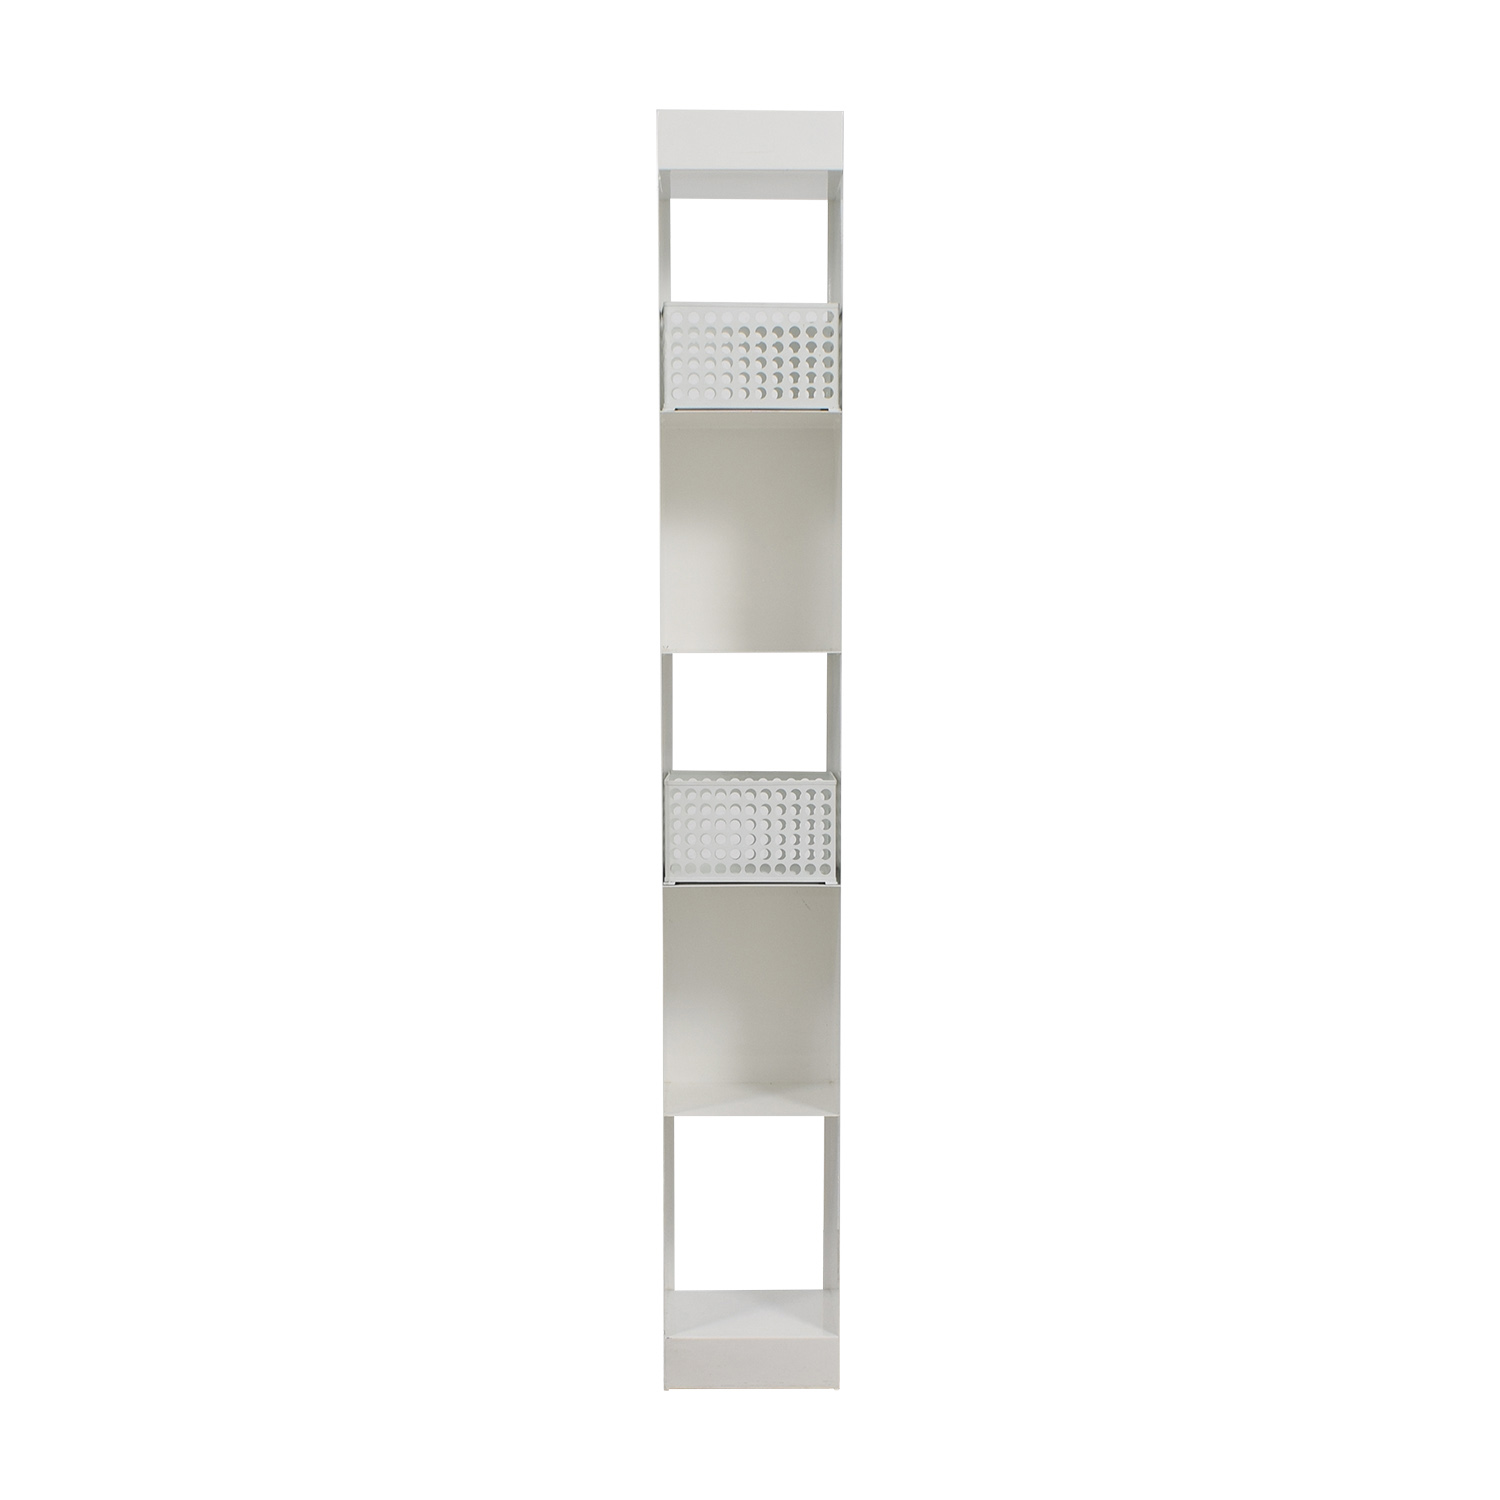 CB2 CB2 White Decorative Shelving for sale